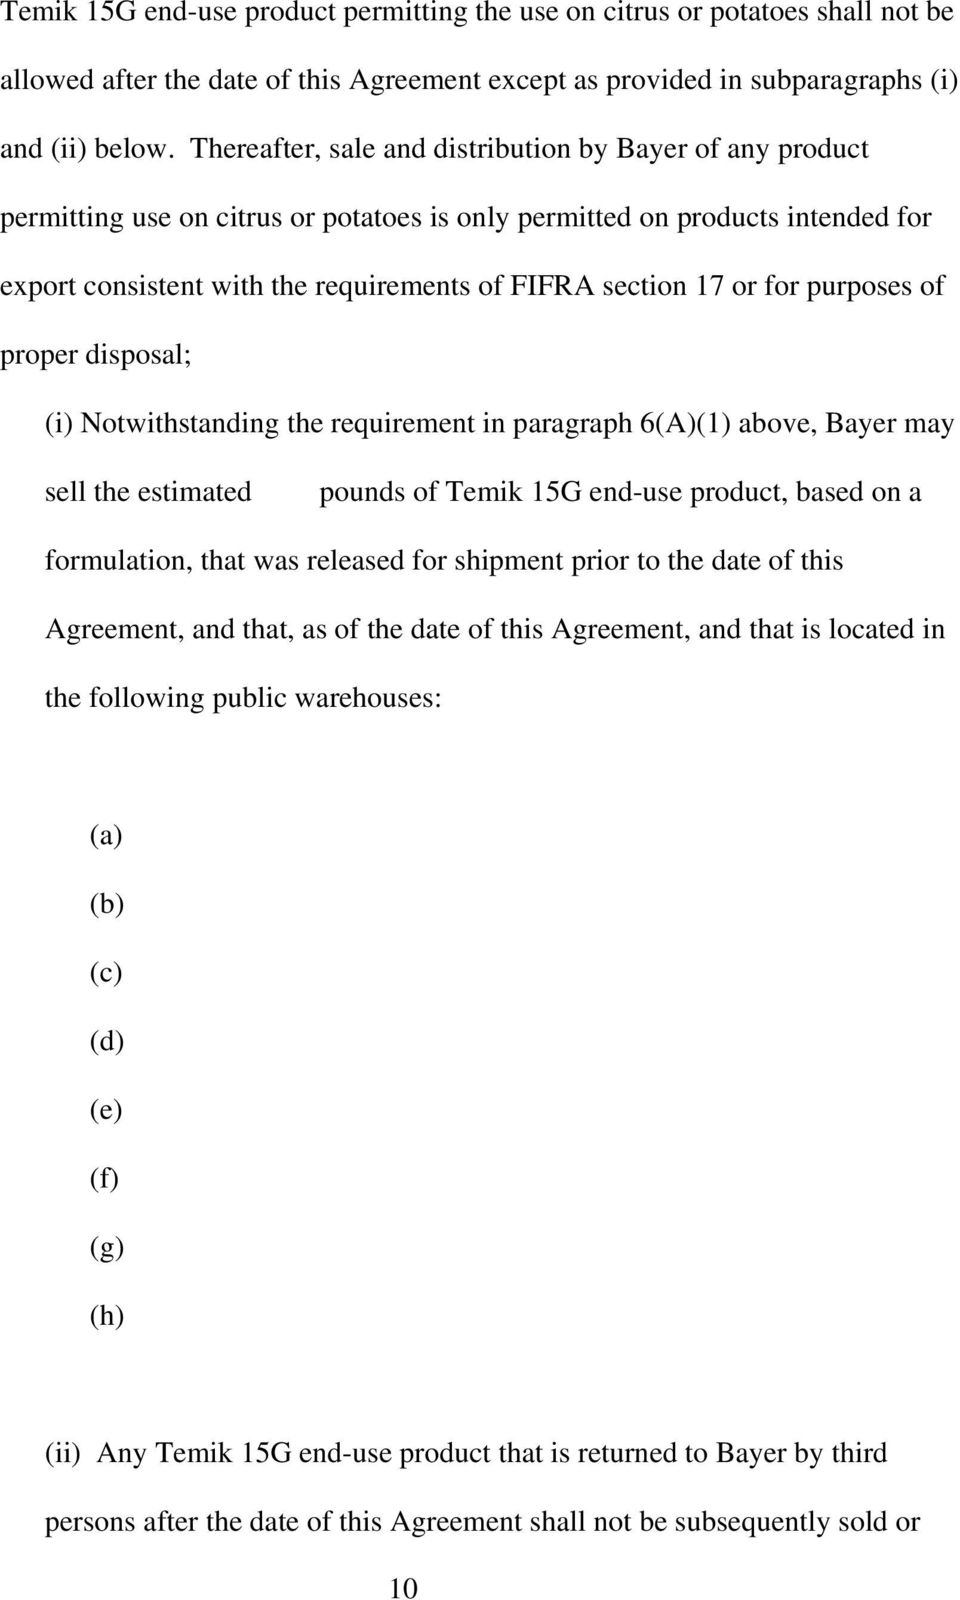 or for purposes of proper disposal; (i) Notwithstanding the requirement in paragraph 6(A)(1) above, Bayer may sell the estimated pounds of Temik 15G end-use product, based on a formulation, that was